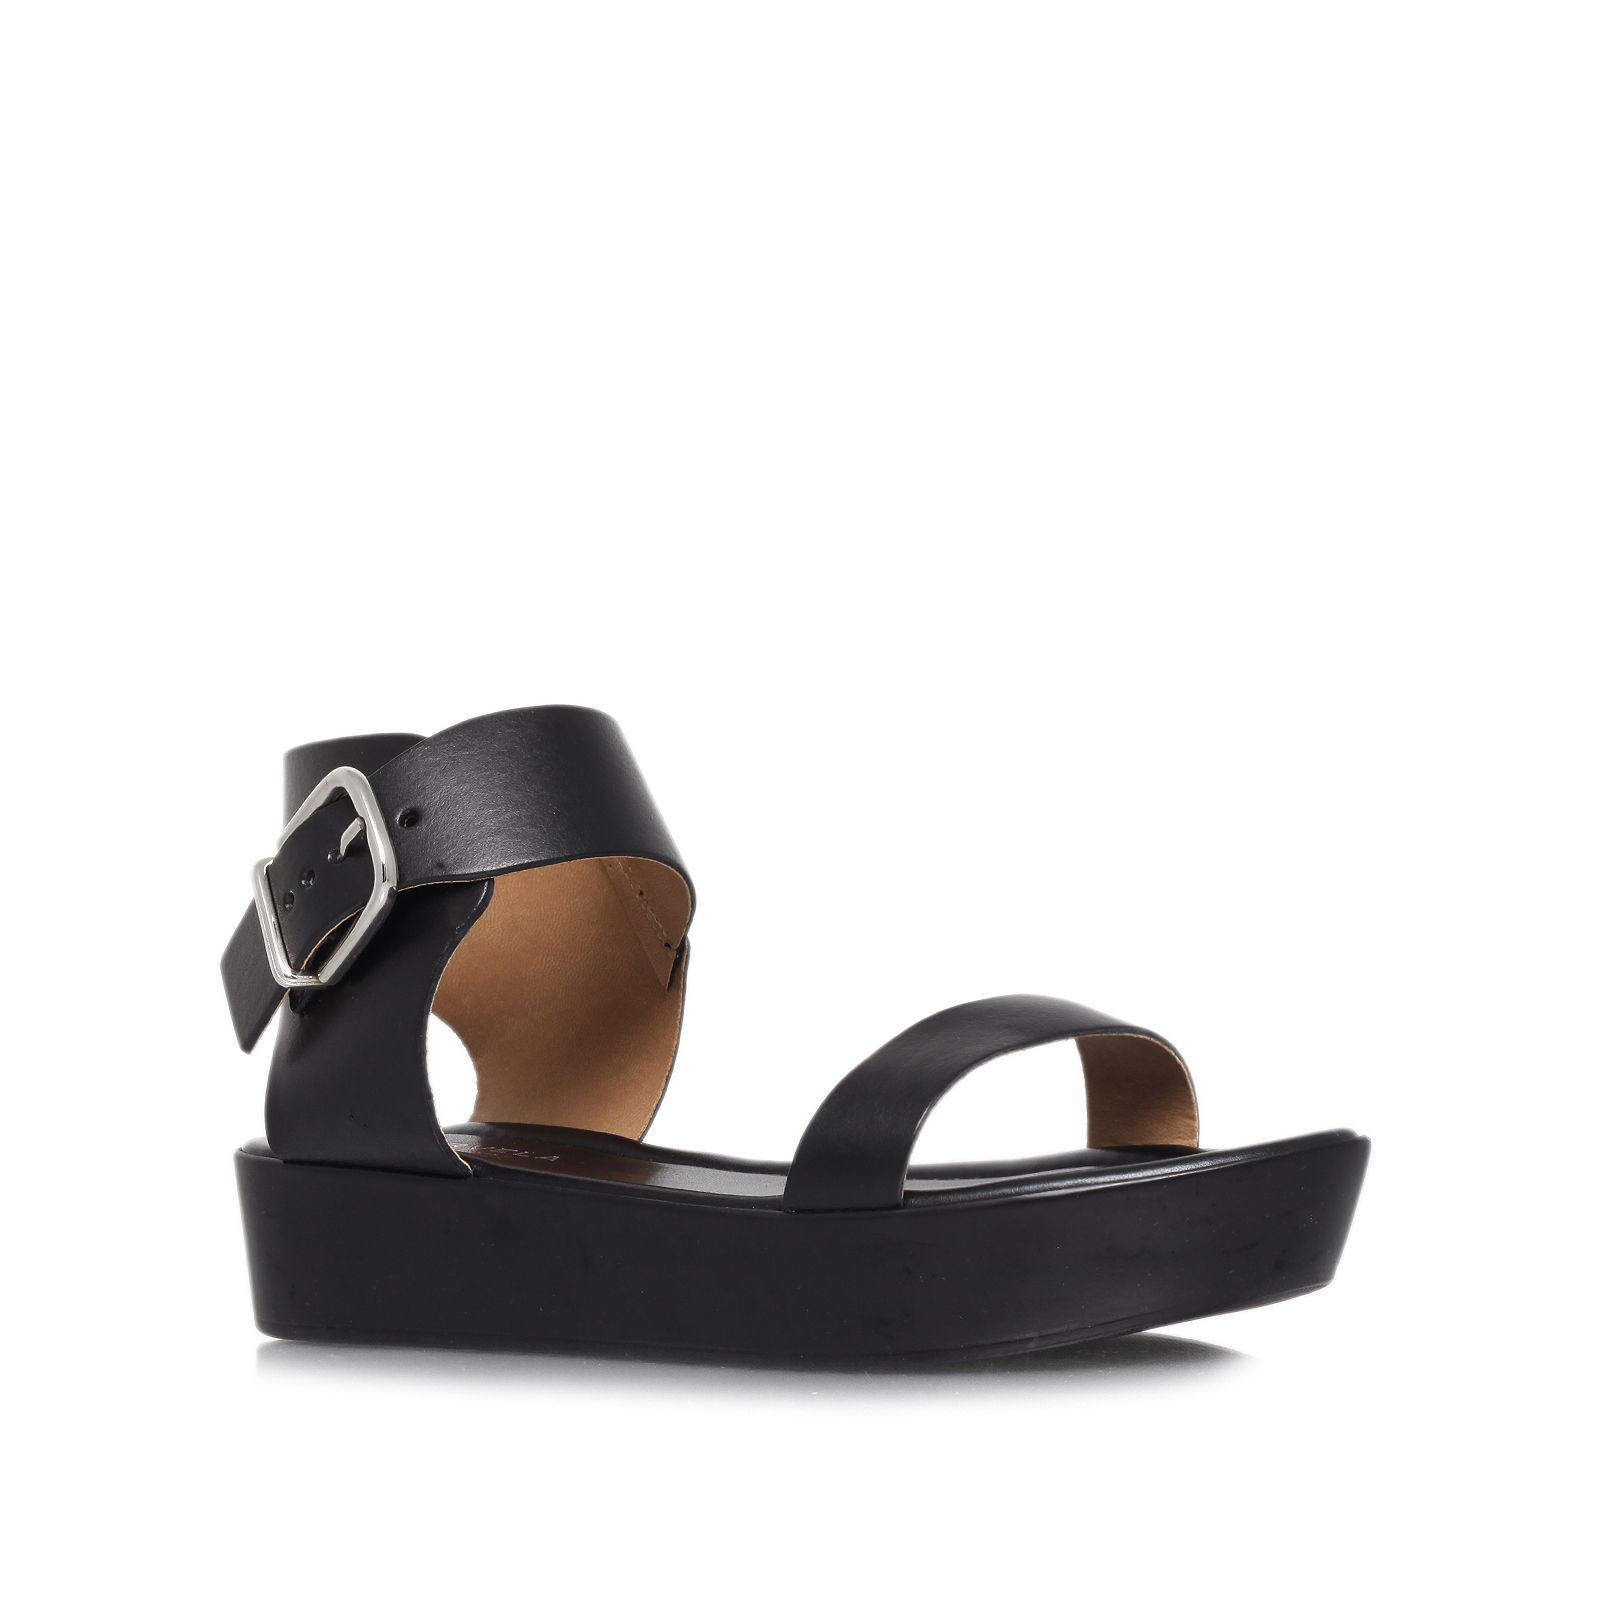 Komb low heel wedge sandals